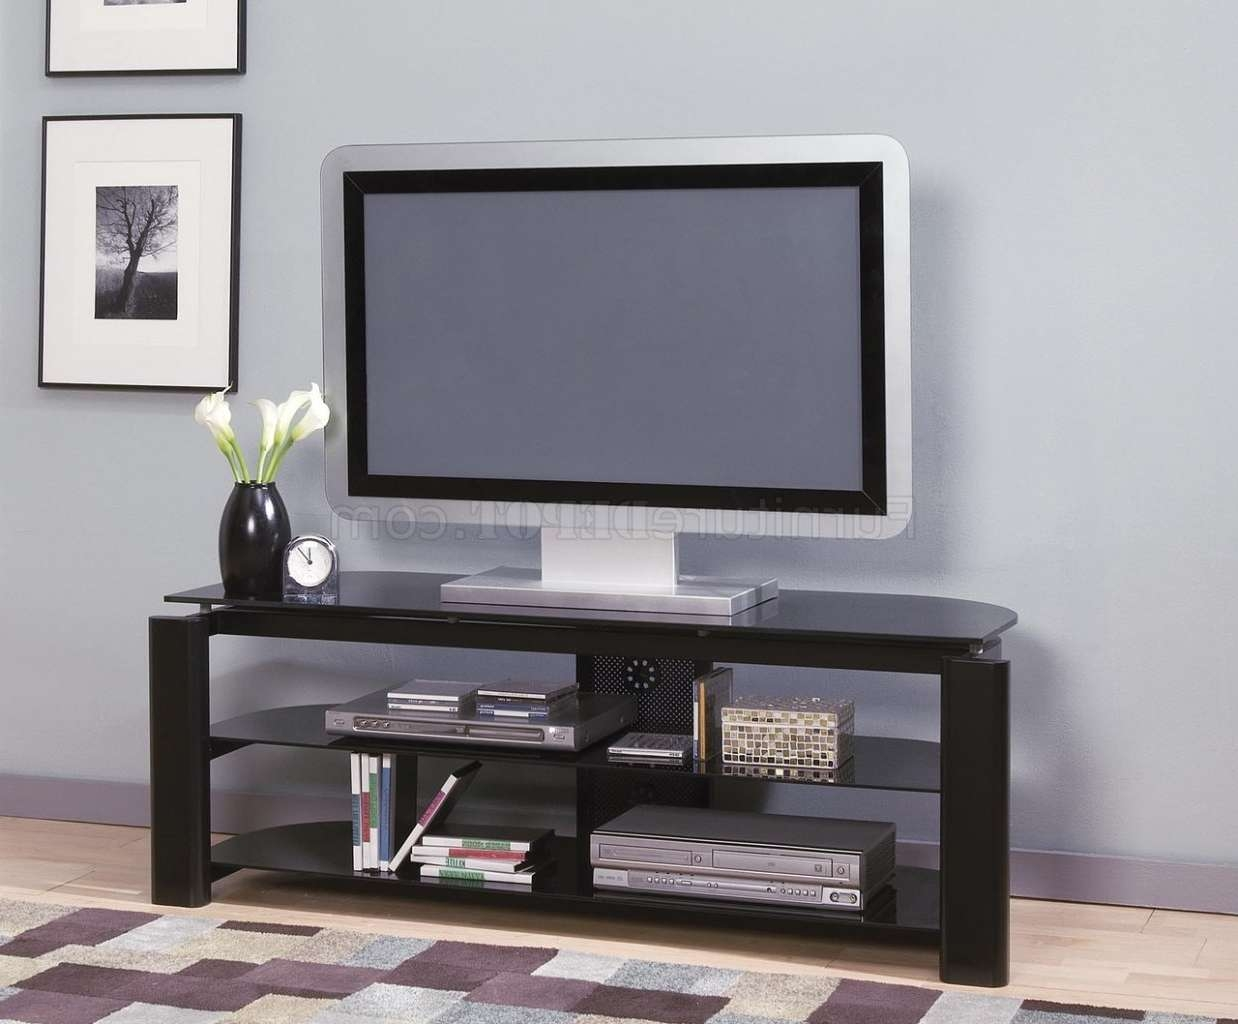 New Contemporary Glass Tv Stands 38 In Home Decoration Ideas With Regarding Contemporary Glass Tv Stands (View 13 of 15)